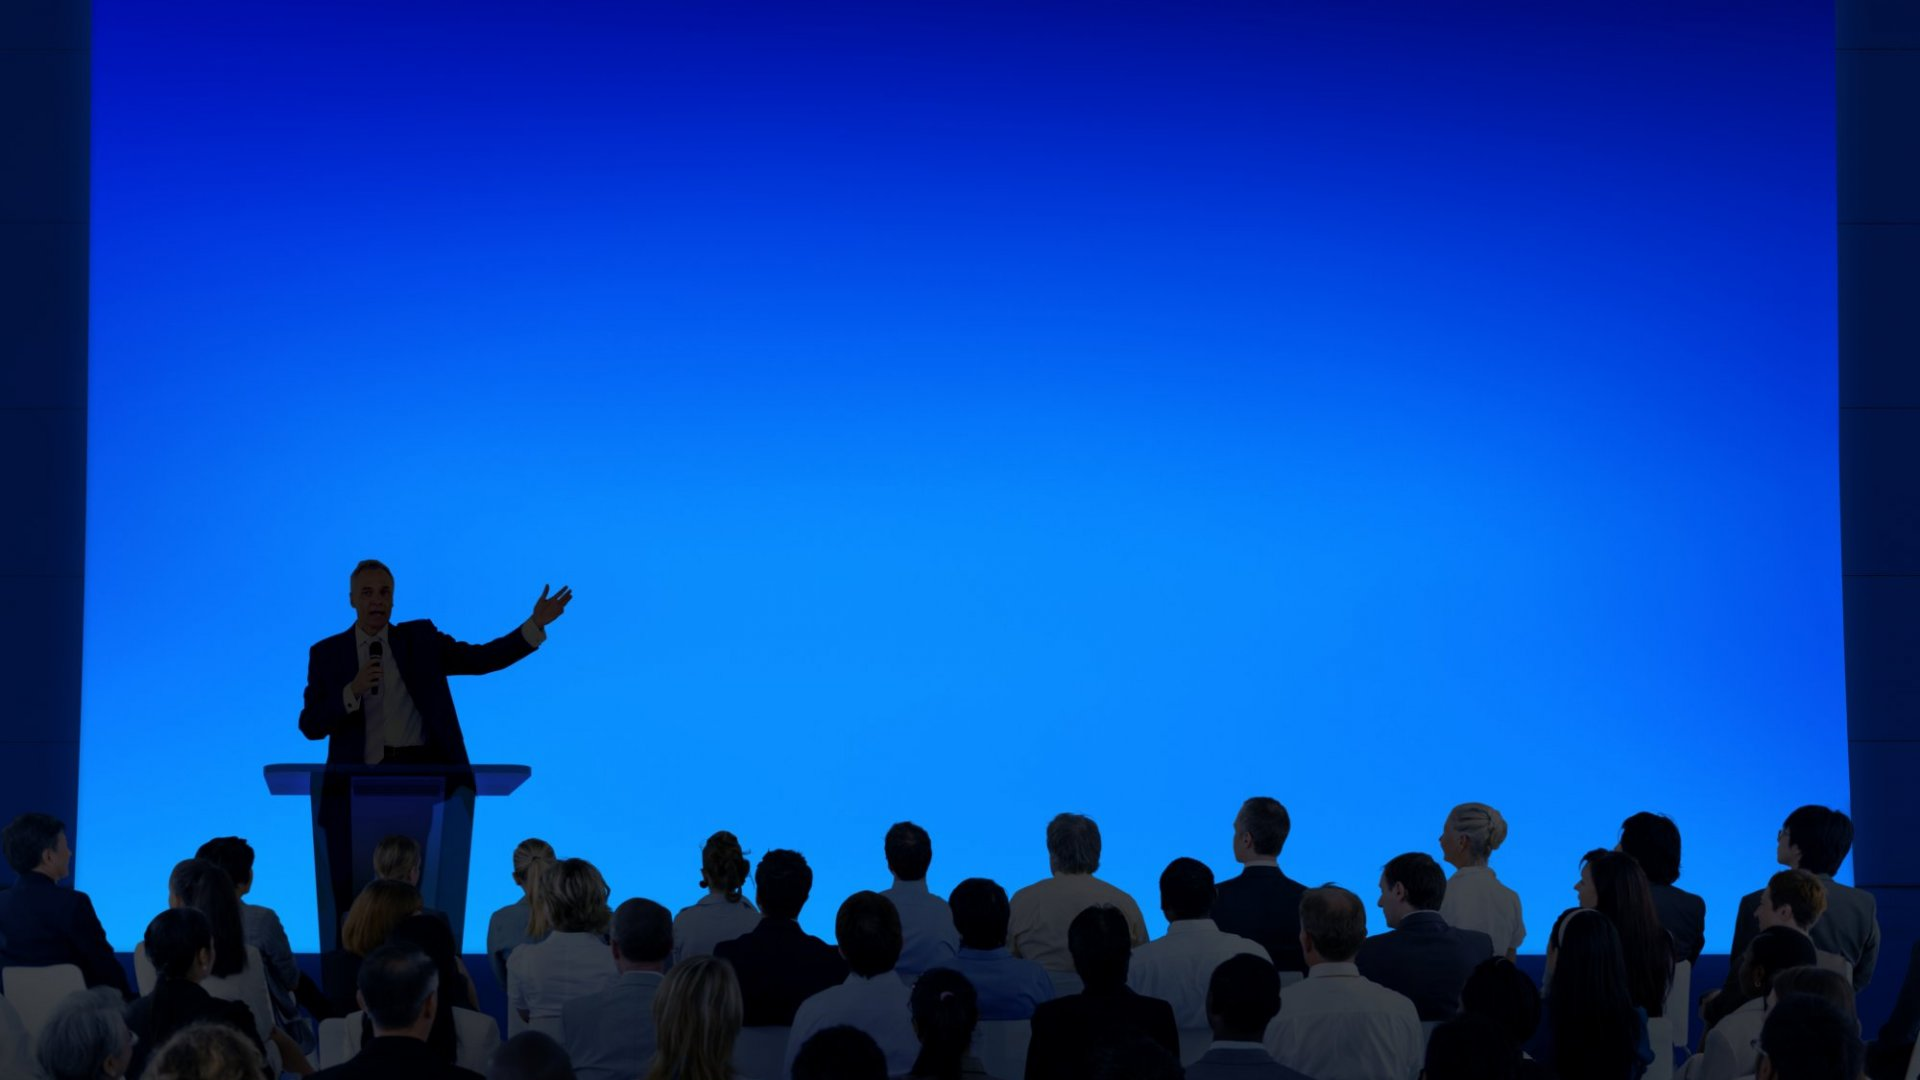 3 Keys to Deliver An Amazing Presentation Suited to the Room